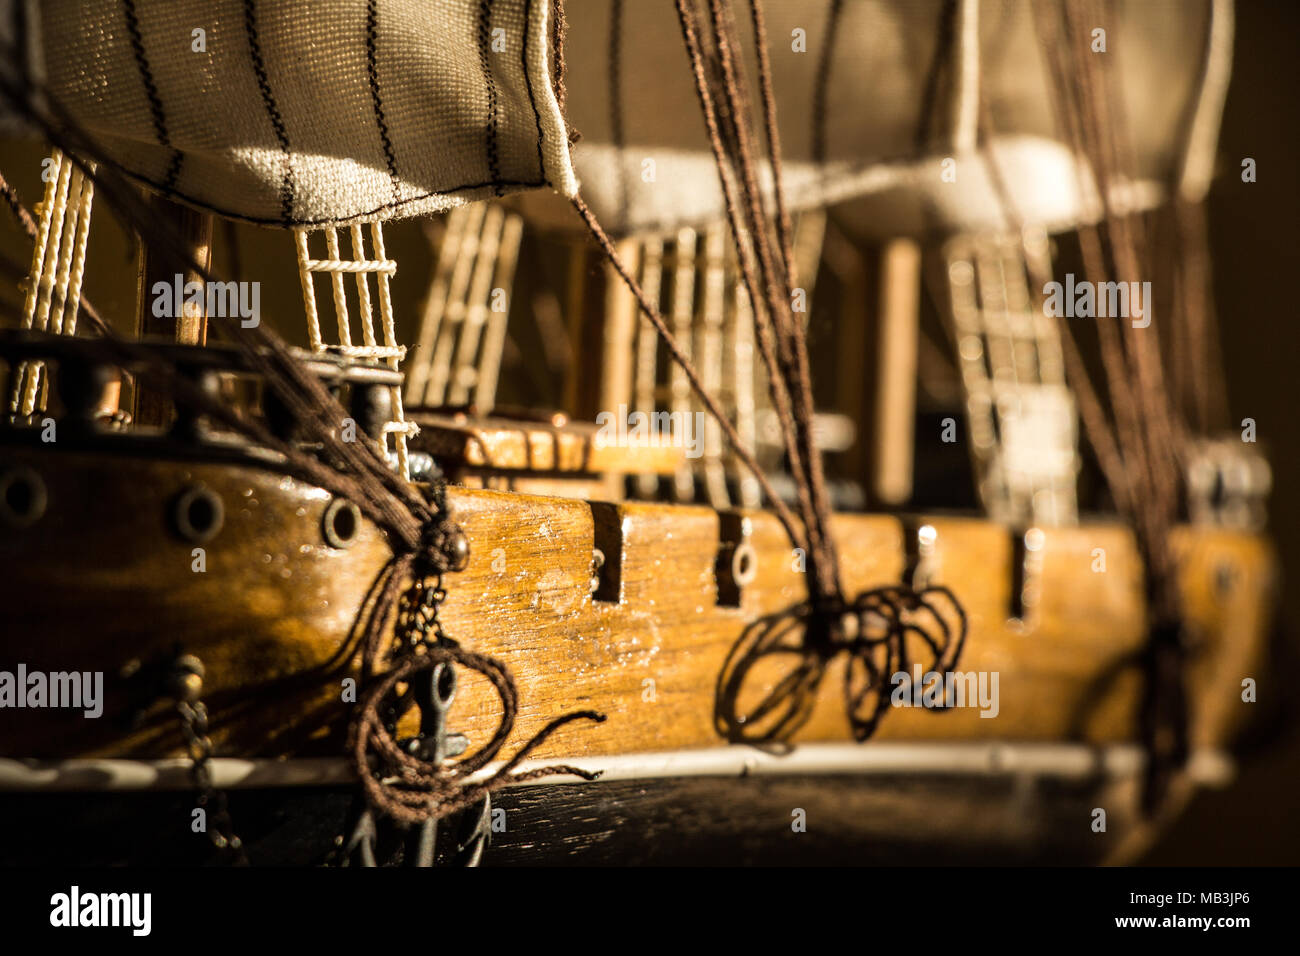 Horizontal close up shot of a model wooden sail ship - Stock Image